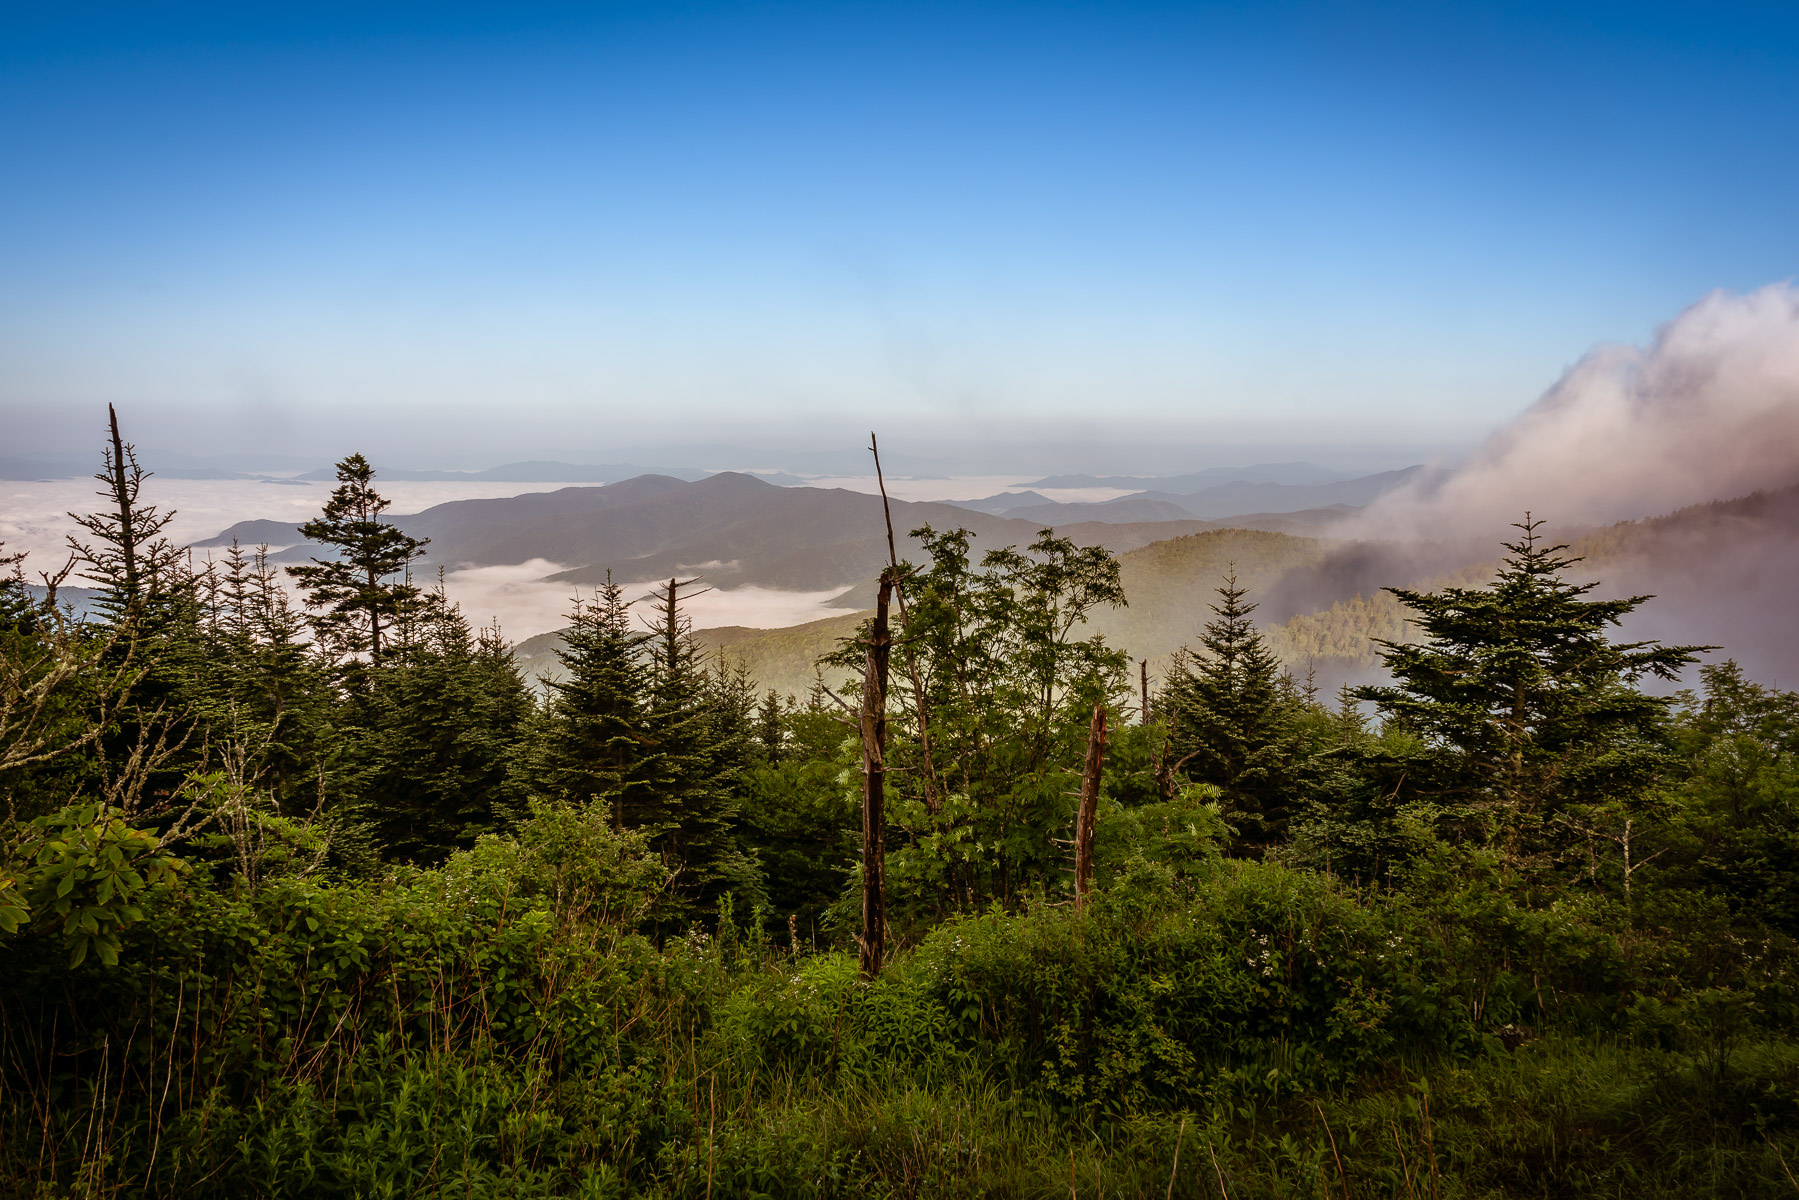 Trees grow near the summit of Clingmans Dome in the Great Smoky Mountains National Park.